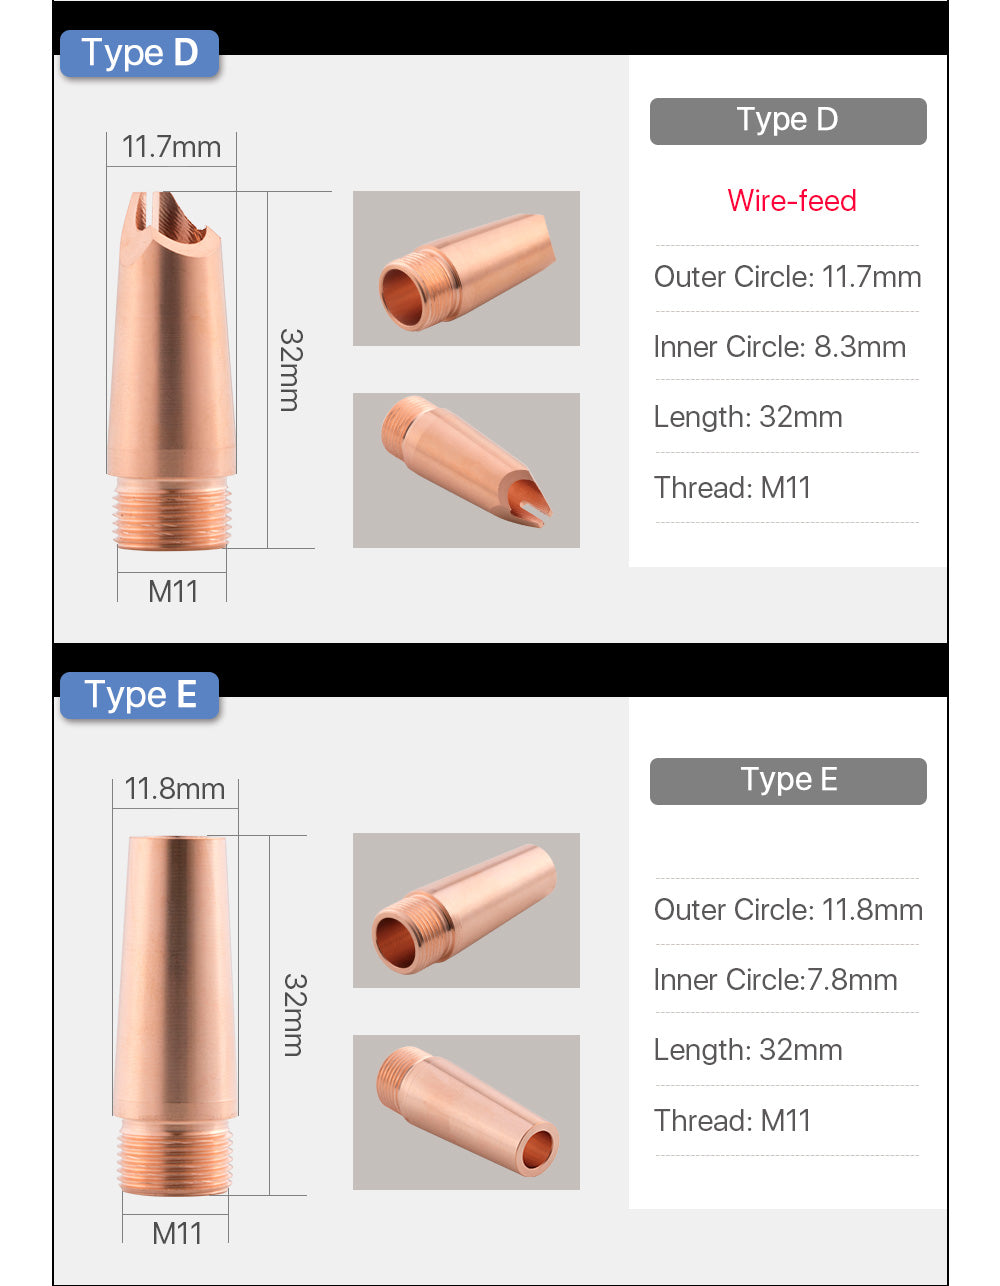 Welding nozzle thread M11 with wire feed for welding head